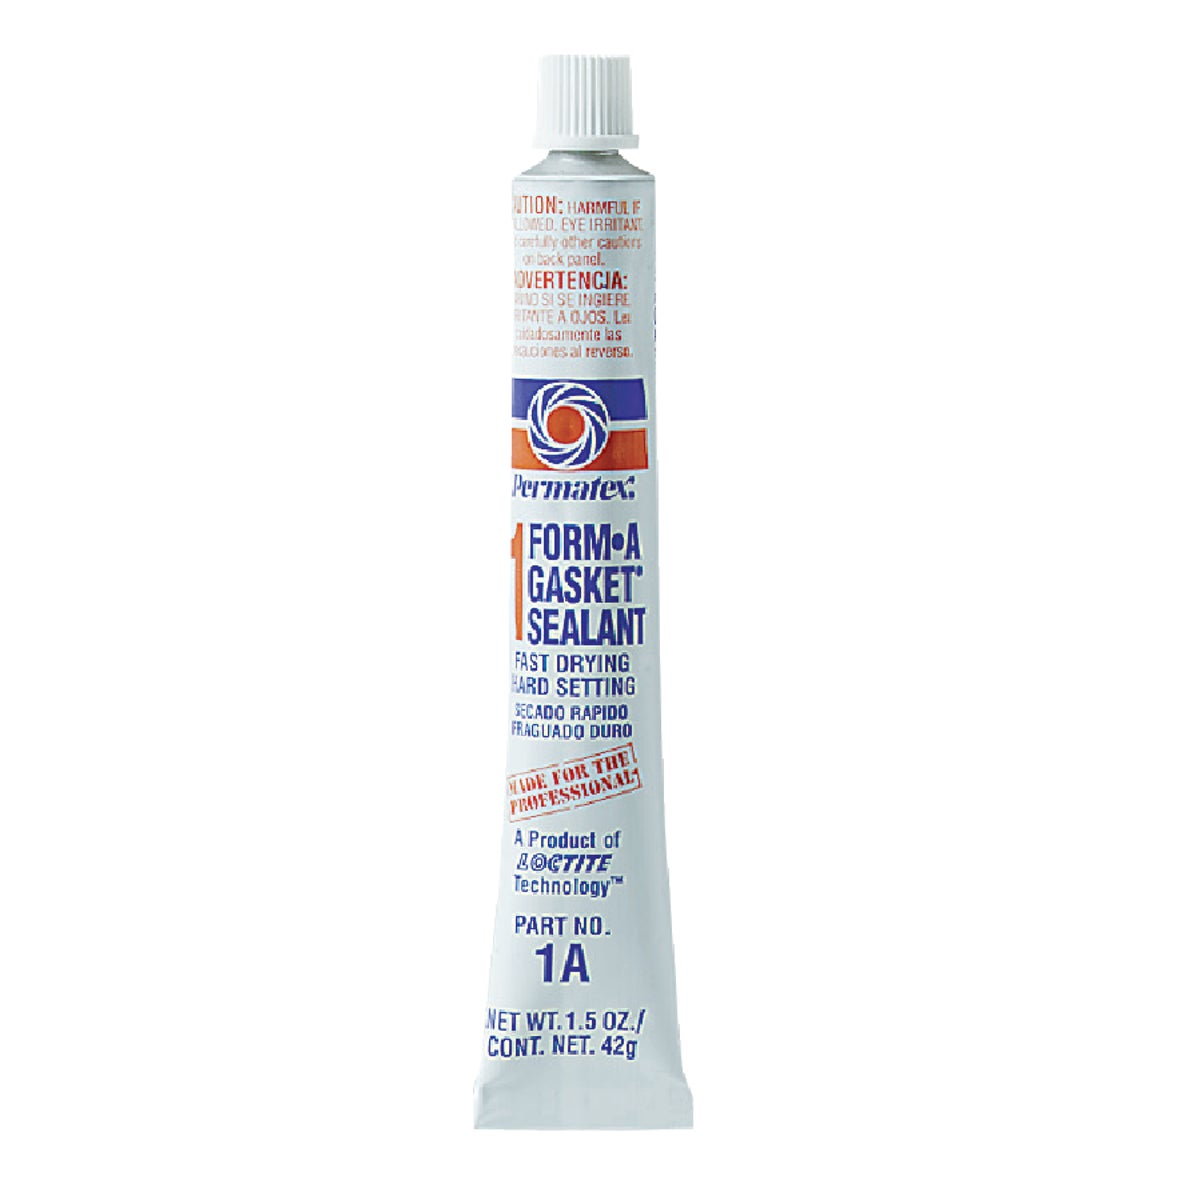 1.5OZ GASKET SEALANT - 80007 by Itw Global Brands